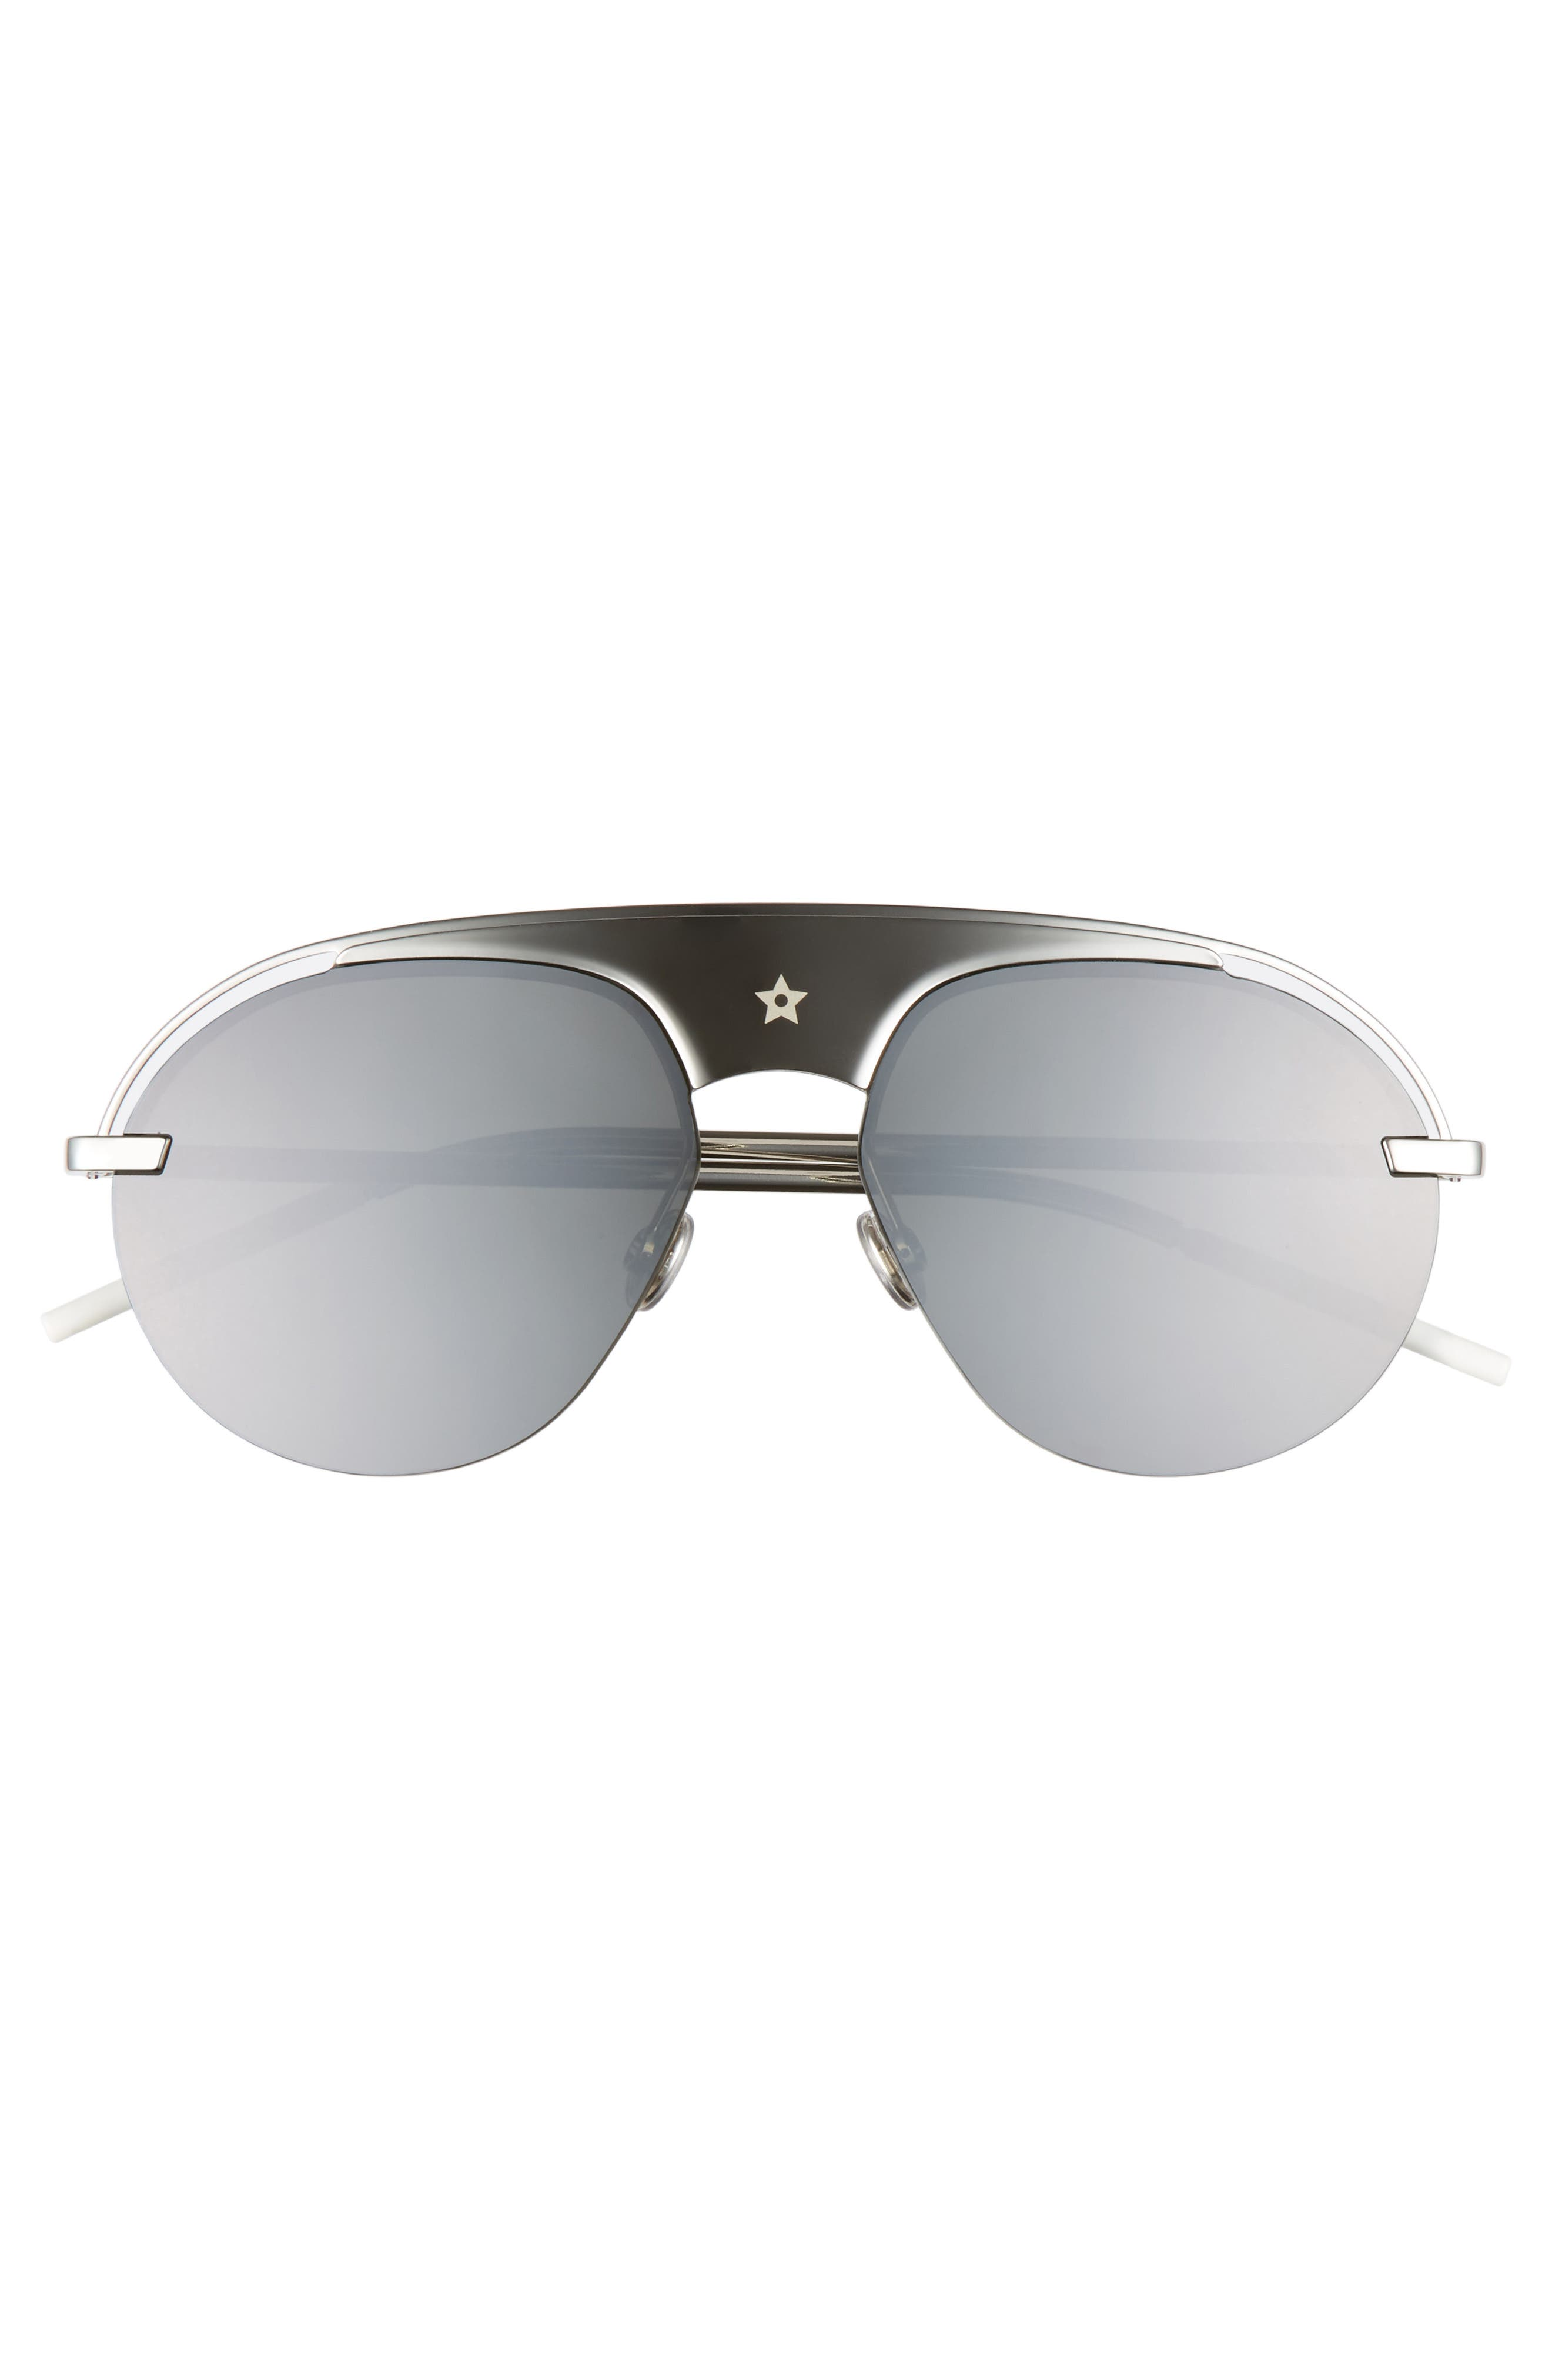 Evolution 2 60mm Aviator Sunglasses,                             Alternate thumbnail 3, color,                             Palladium